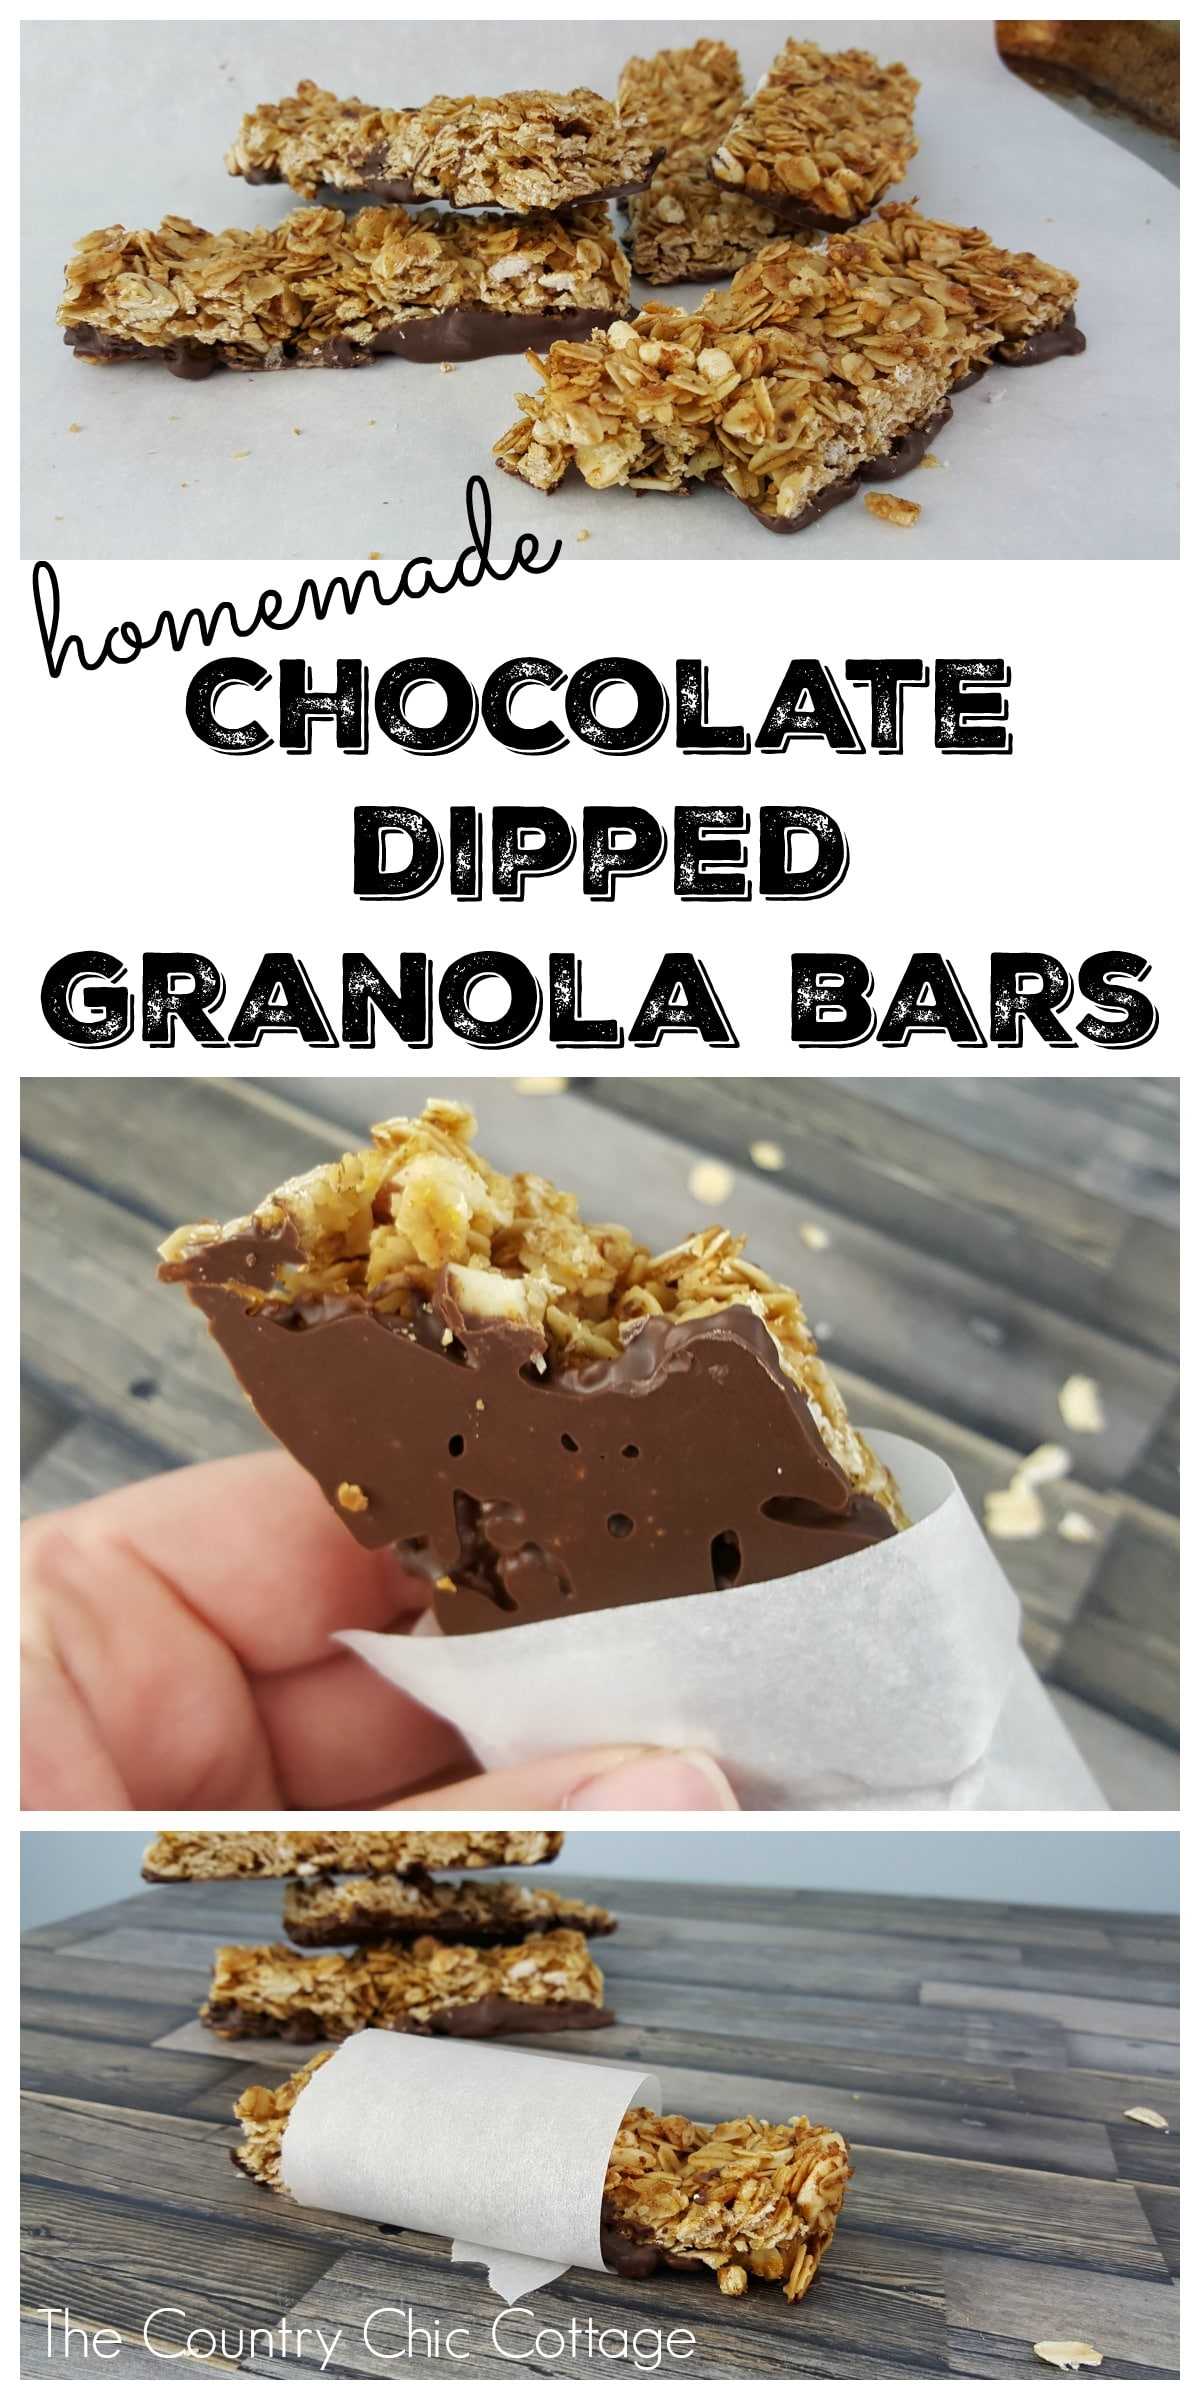 chocolate dipped granola bars by the country chic cottage